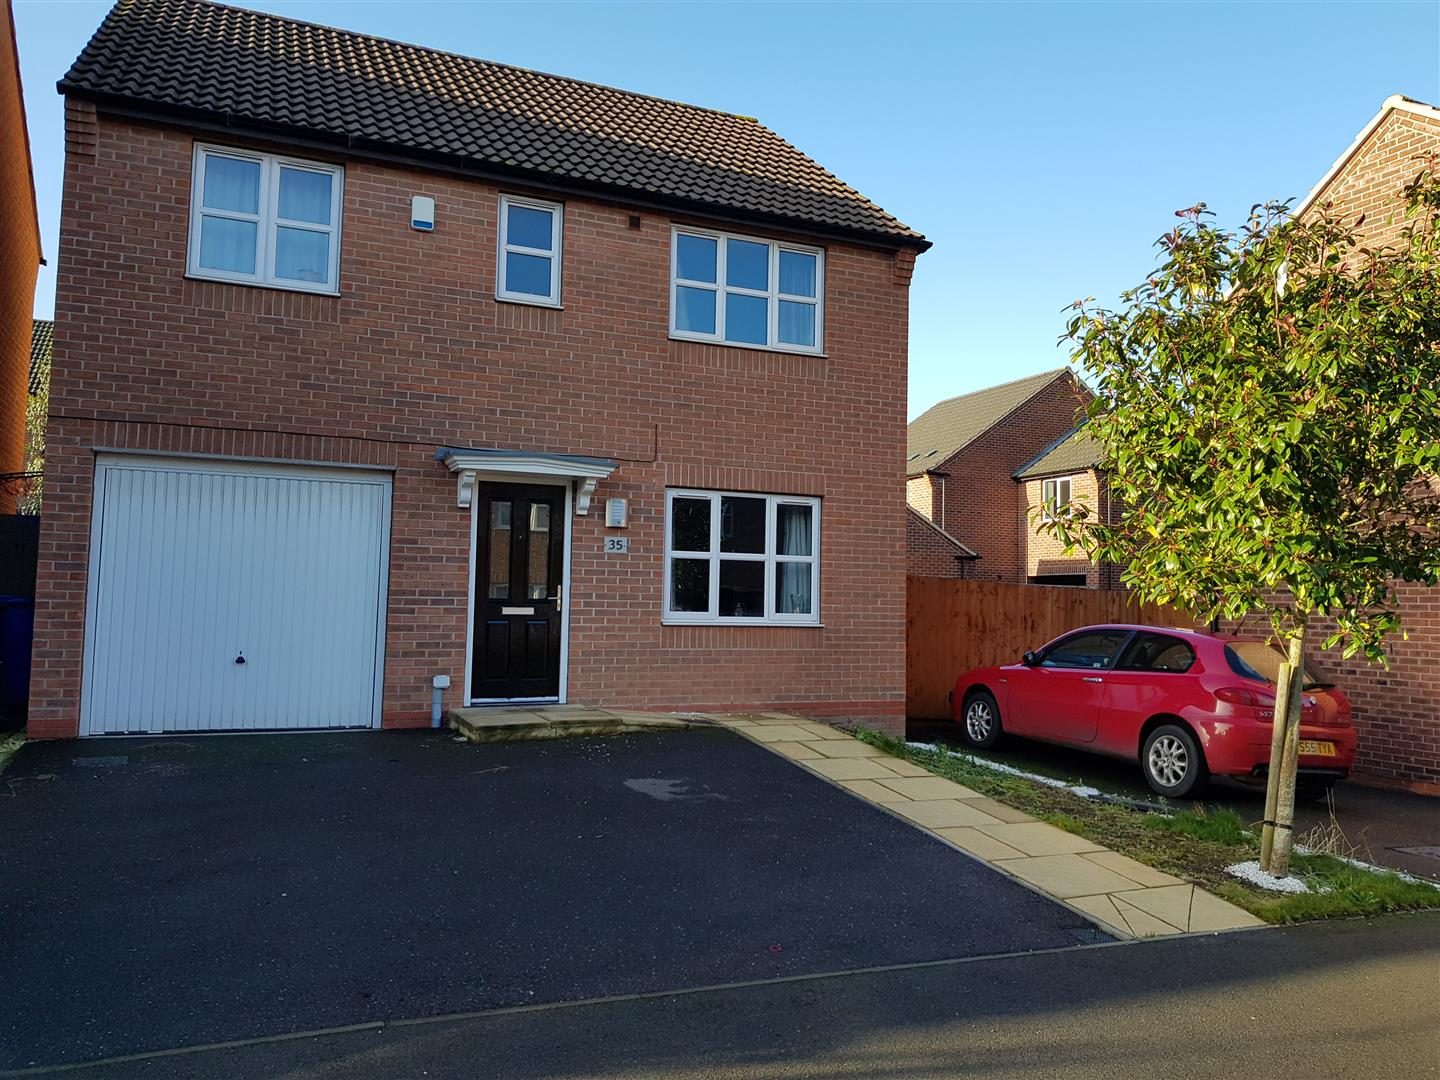 4 Bedrooms Detached House for sale in Blackshale Road, Mansfield Woodhouse, Mansfield